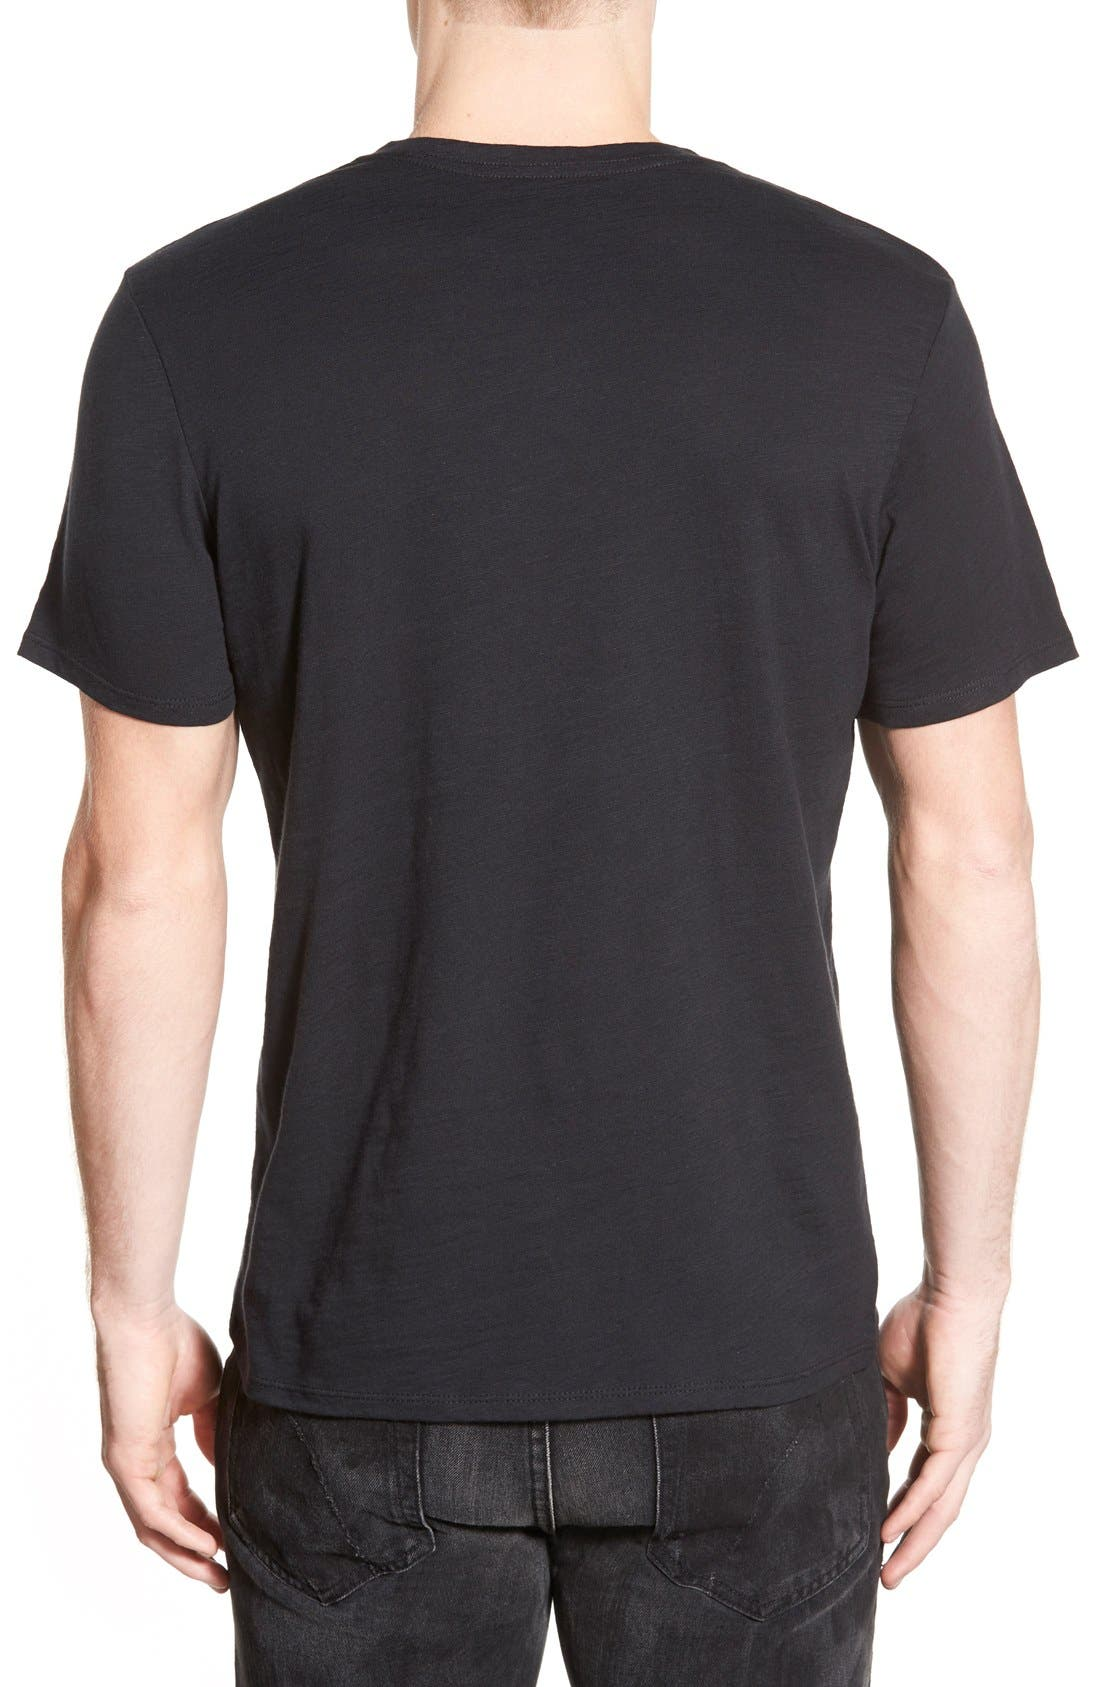 THE RAIL Slub Cotton V-Neck T-Shirt, Main, color, BLACK